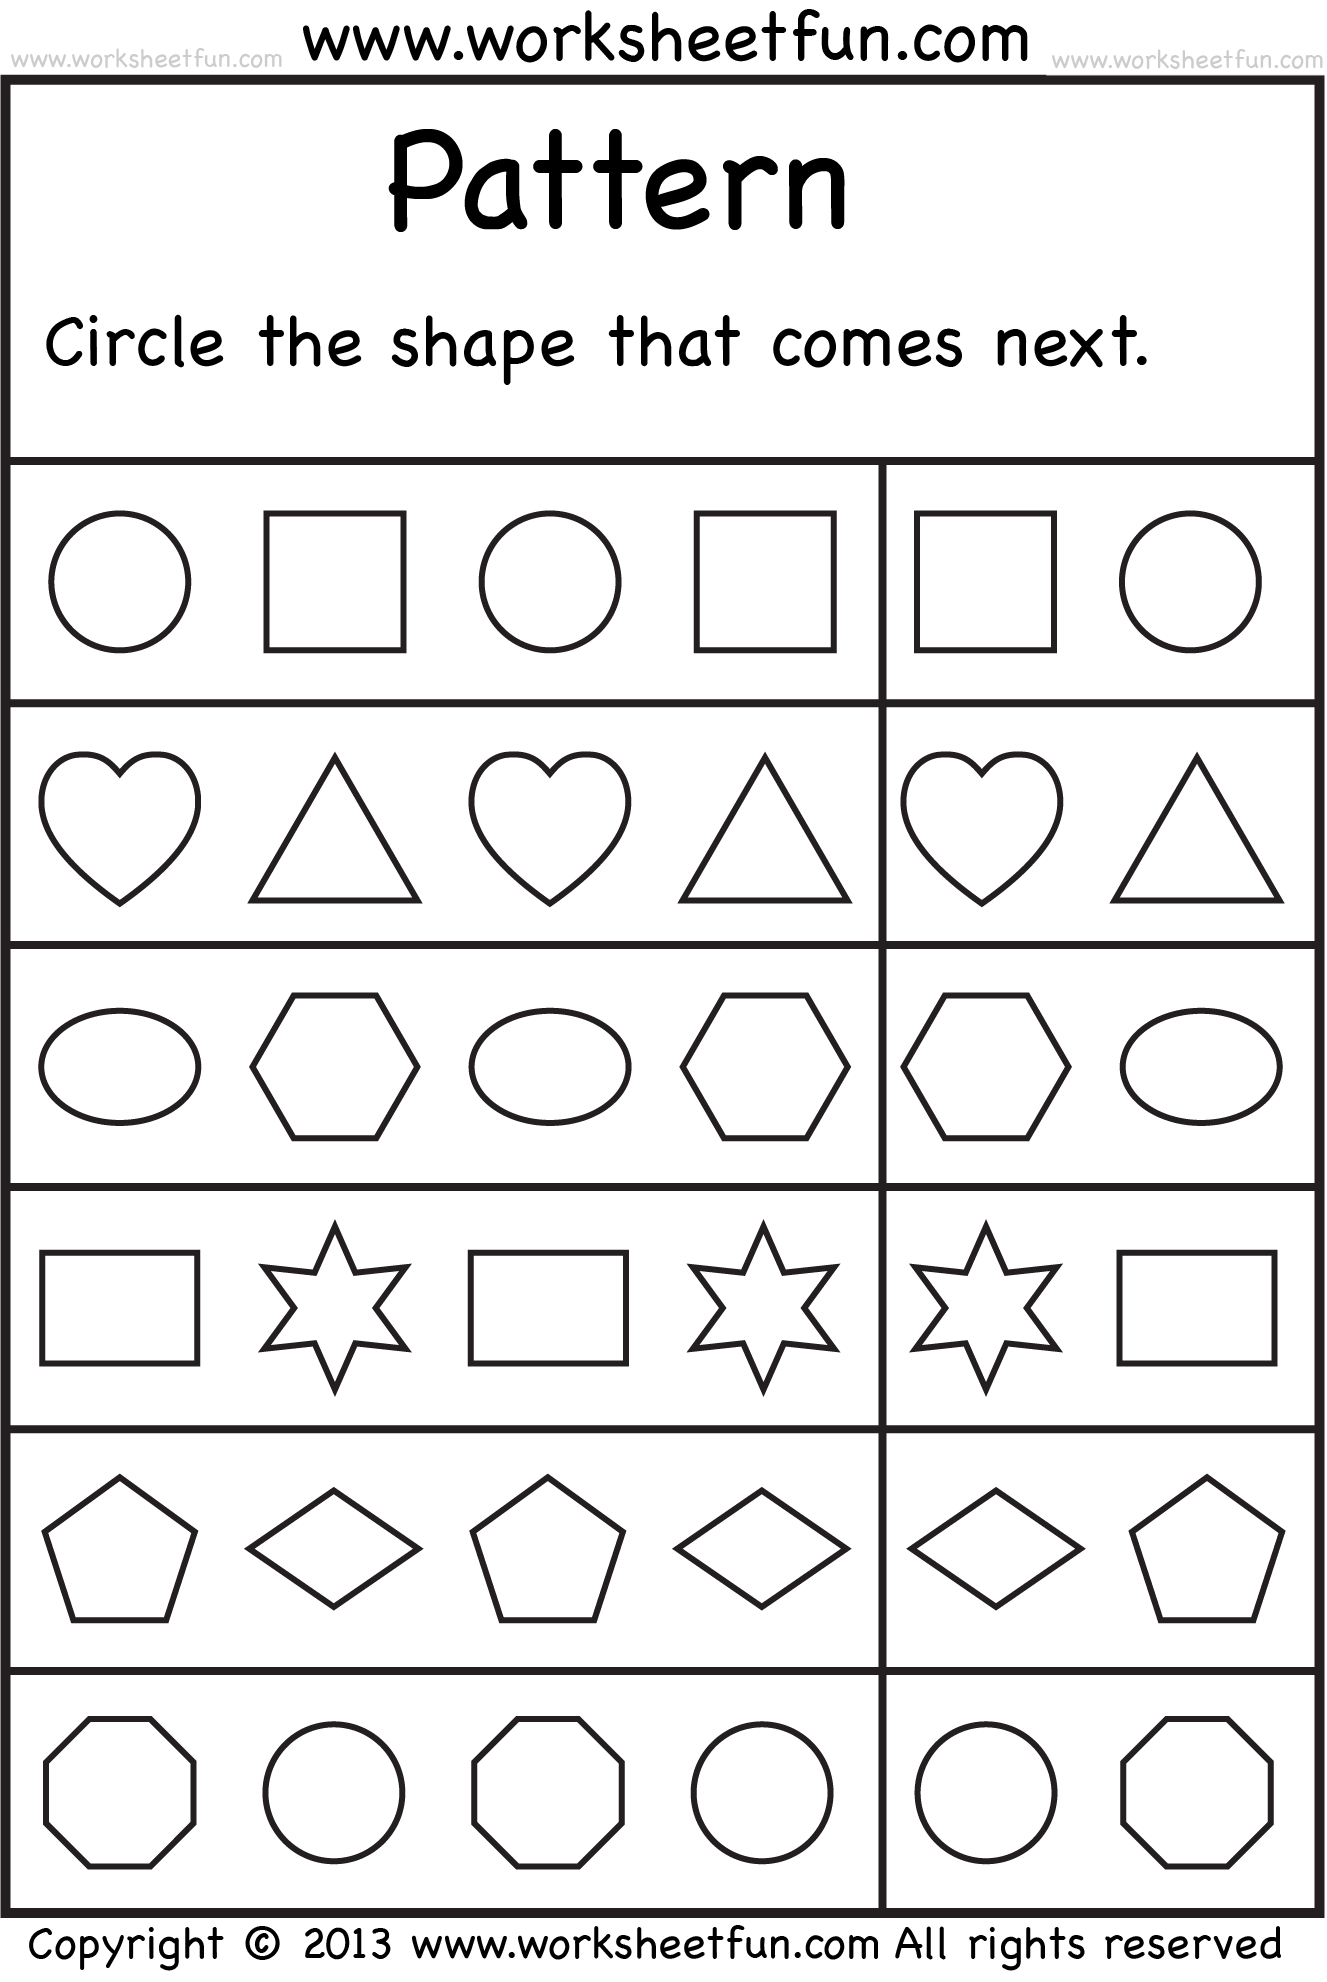 Weirdmailus  Sweet  Images About School Worksheets On Pinterest  Number Words  With Fetching  Images About School Worksheets On Pinterest  Number Words Alphabet Worksheets And Free Printable Kindergarten Worksheets With Enchanting Free Consumer Math Worksheets Also Chemistry Review Worksheets In Addition Dividing And Multiplying Decimals Worksheets And Spanish Vocab Worksheets As Well As An Worksheets Additionally Seventh Grade Reading Comprehension Worksheets From Pinterestcom With Weirdmailus  Fetching  Images About School Worksheets On Pinterest  Number Words  With Enchanting  Images About School Worksheets On Pinterest  Number Words Alphabet Worksheets And Free Printable Kindergarten Worksheets And Sweet Free Consumer Math Worksheets Also Chemistry Review Worksheets In Addition Dividing And Multiplying Decimals Worksheets From Pinterestcom